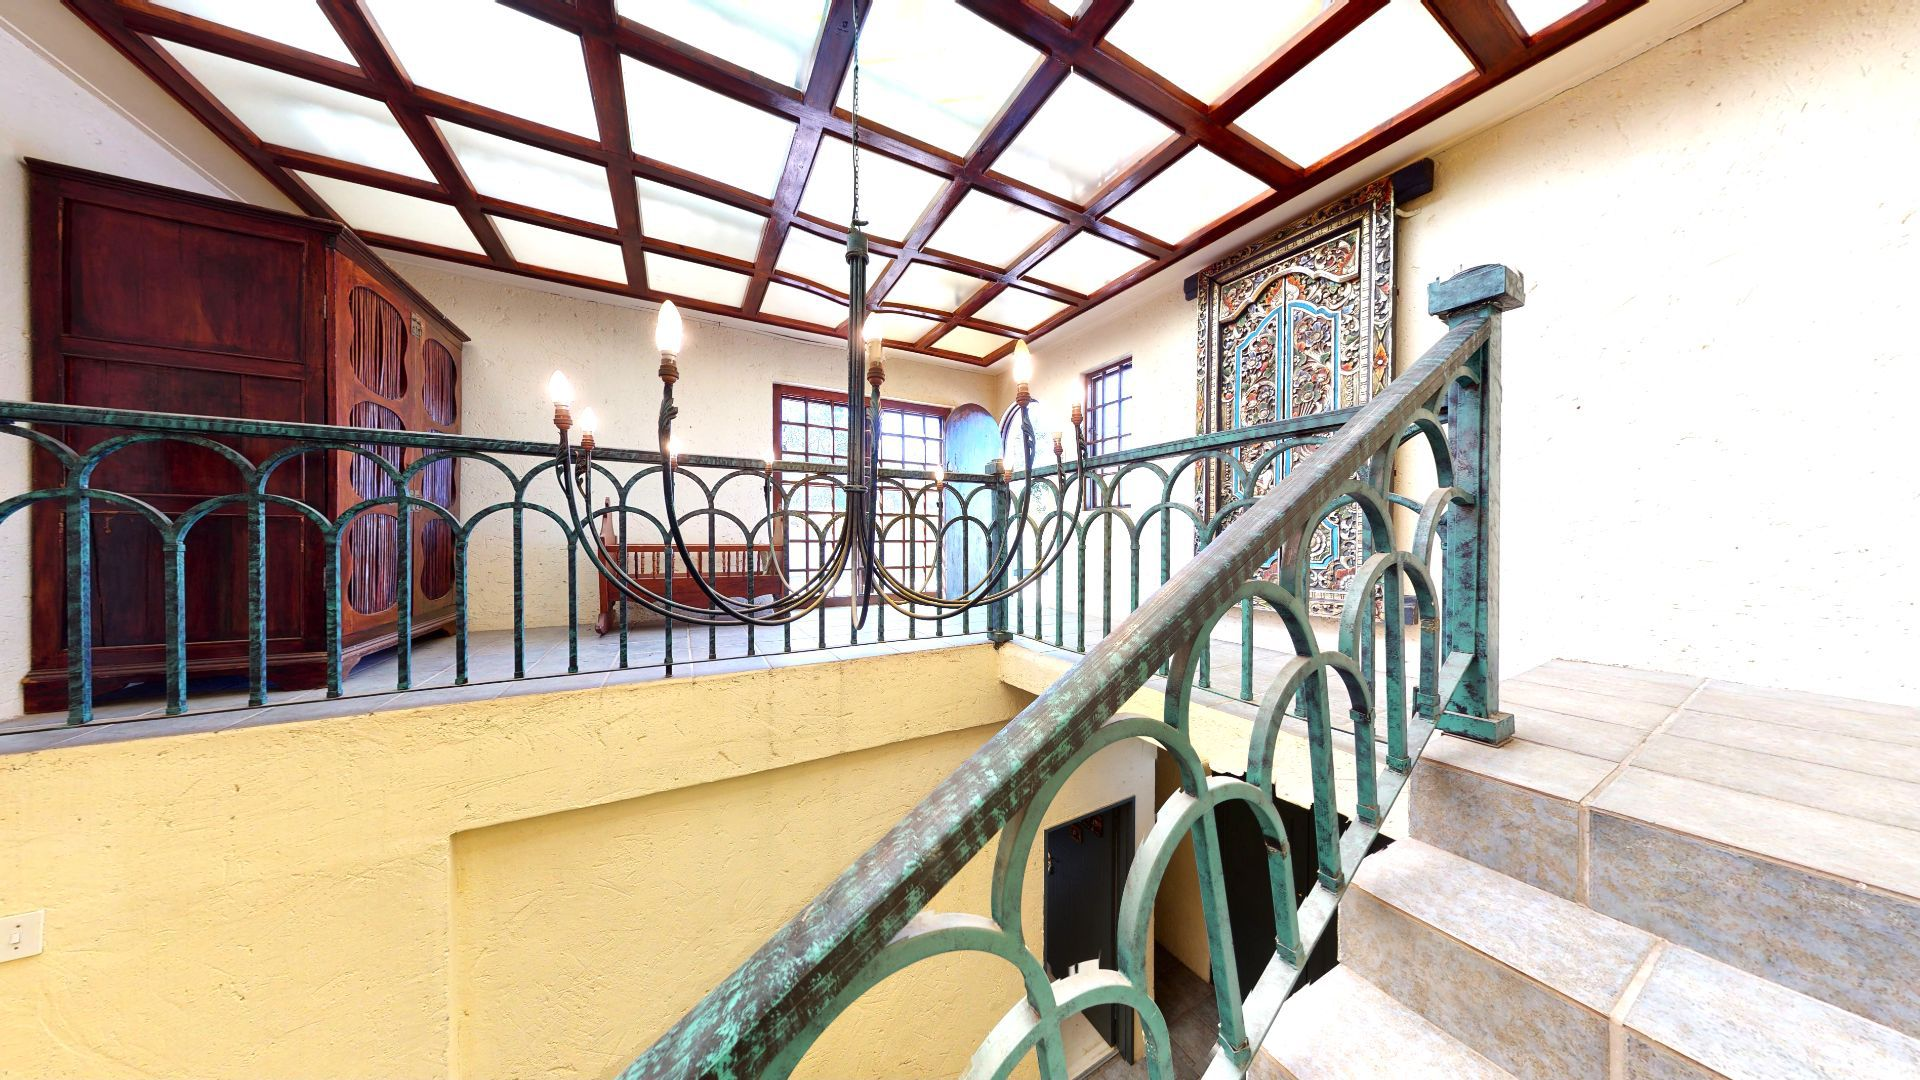 Not-Just-a-14-Bedroom-Home-for-sale-in-Bryanston-it-is-much-more-09162021_194742.jpg